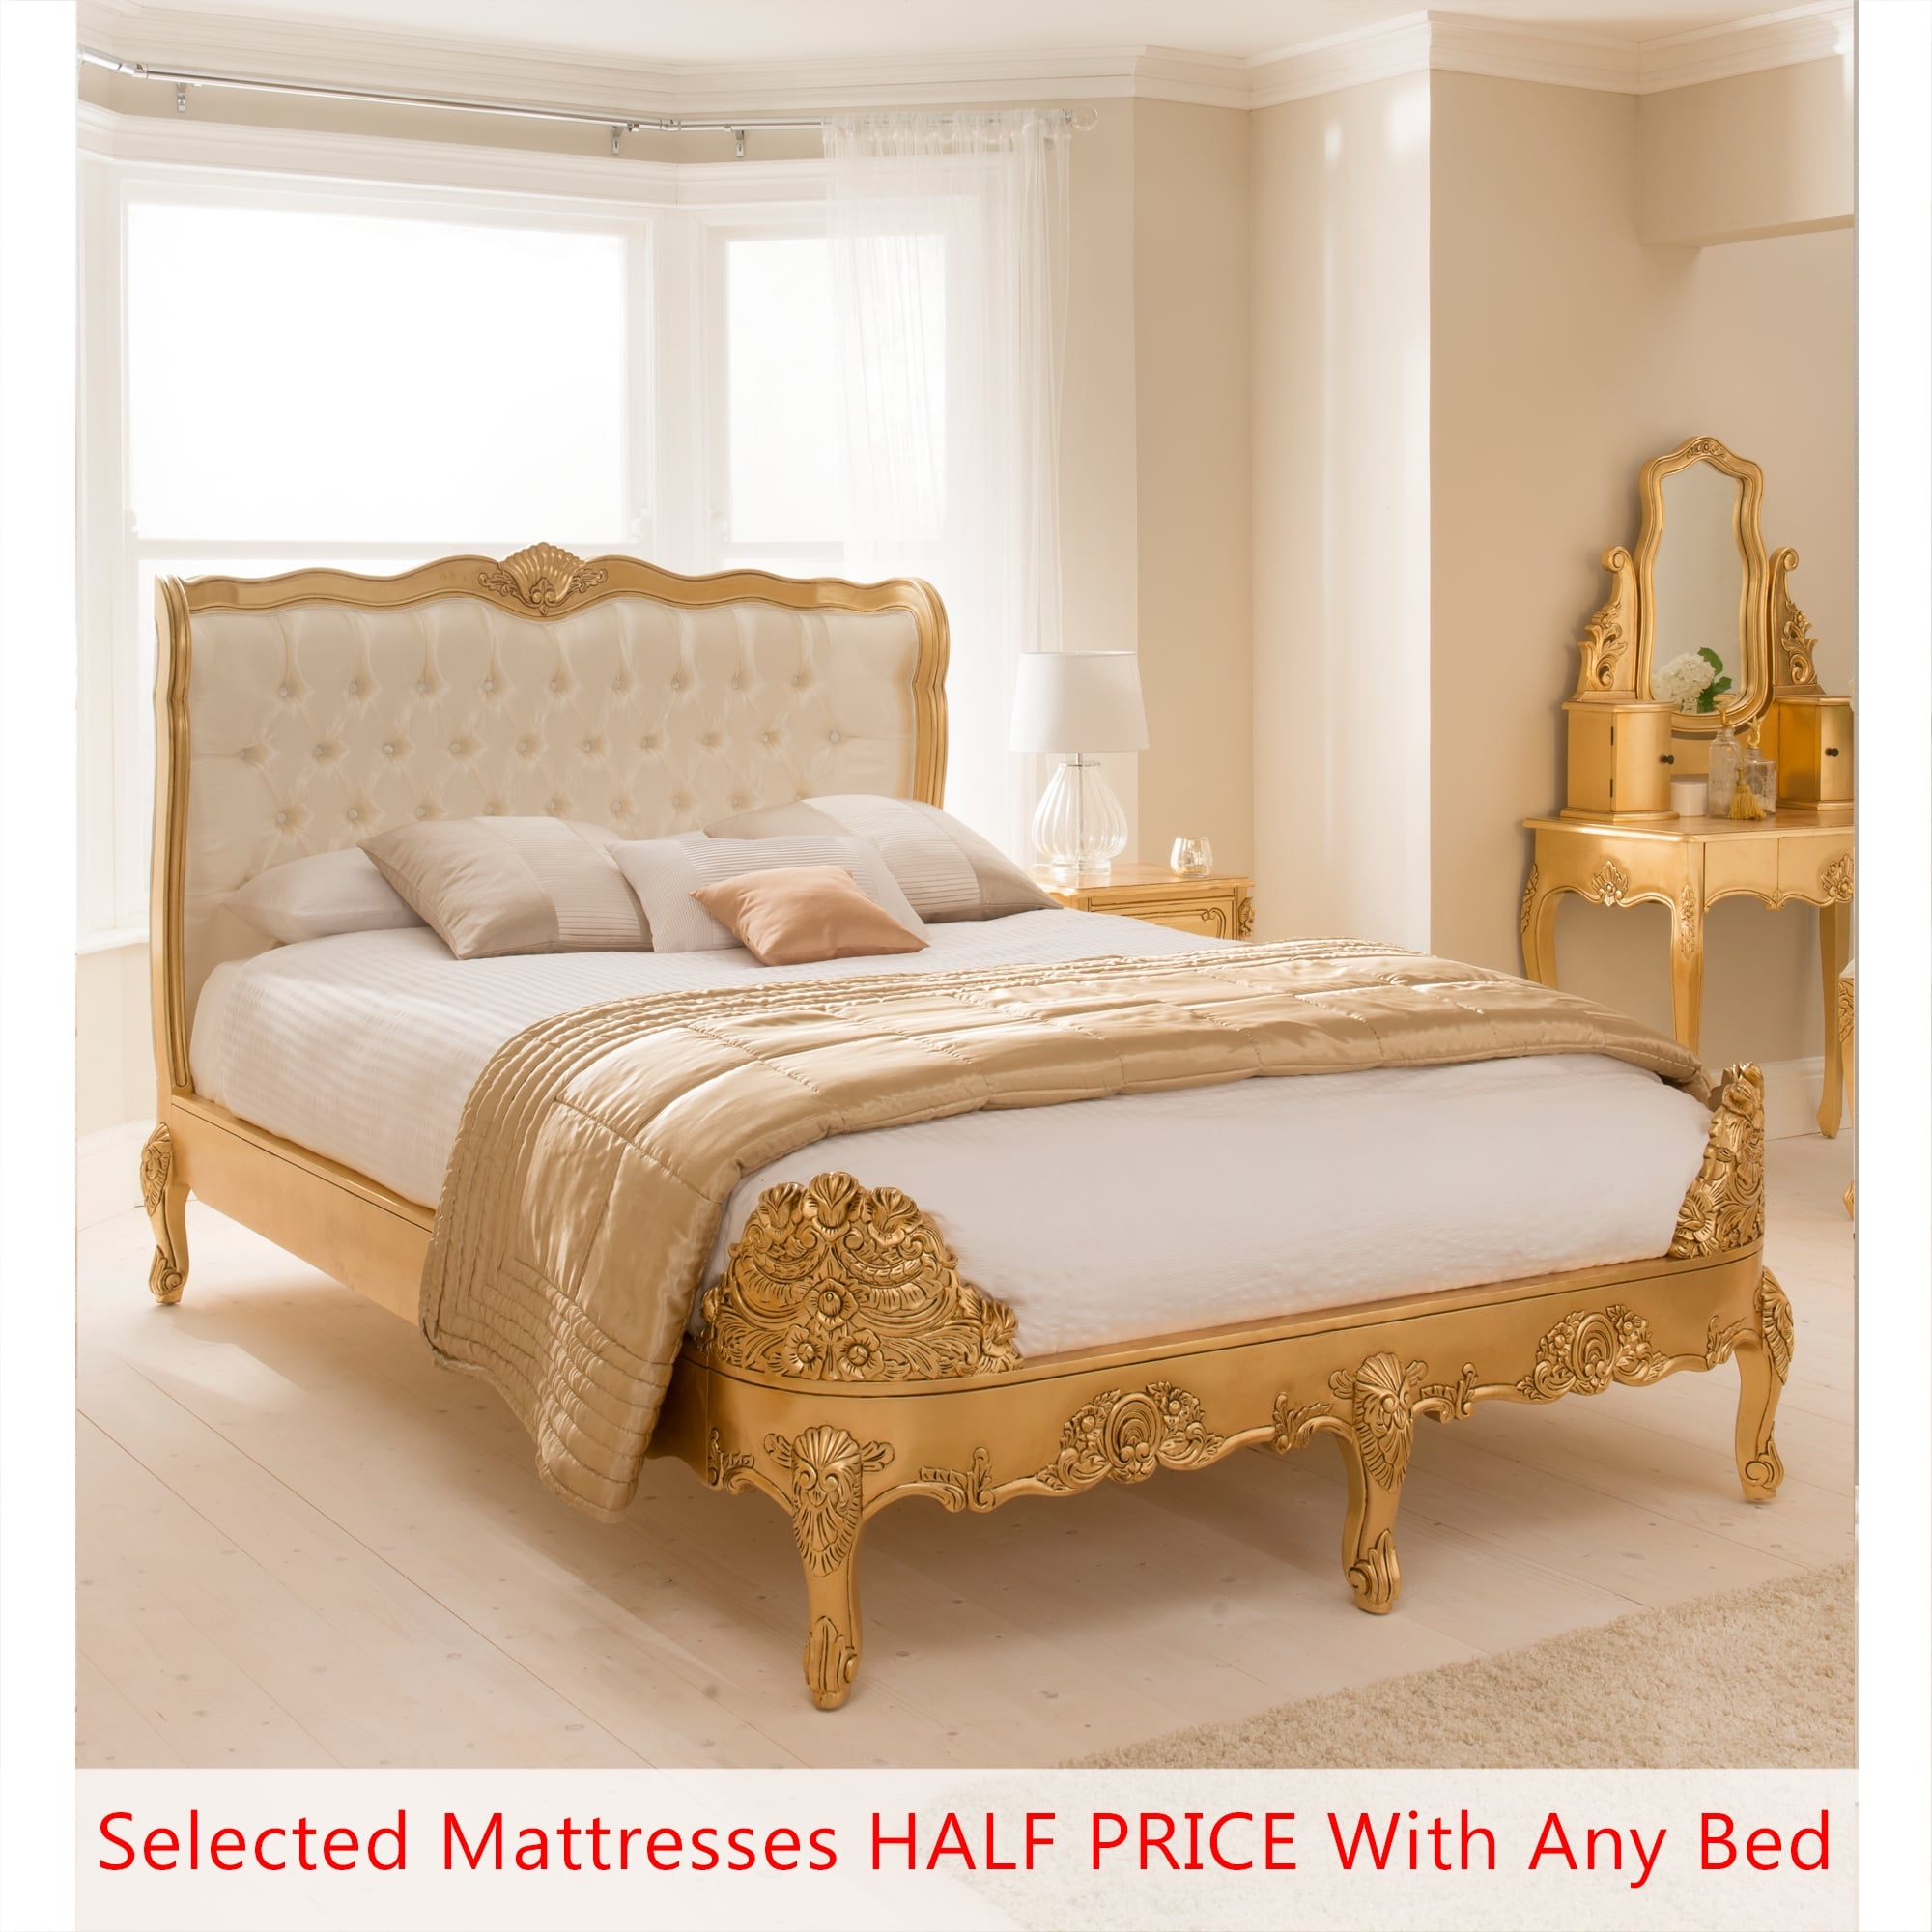 luxury beds king koil winks products height ext world mattresses forty width qb milan mattress